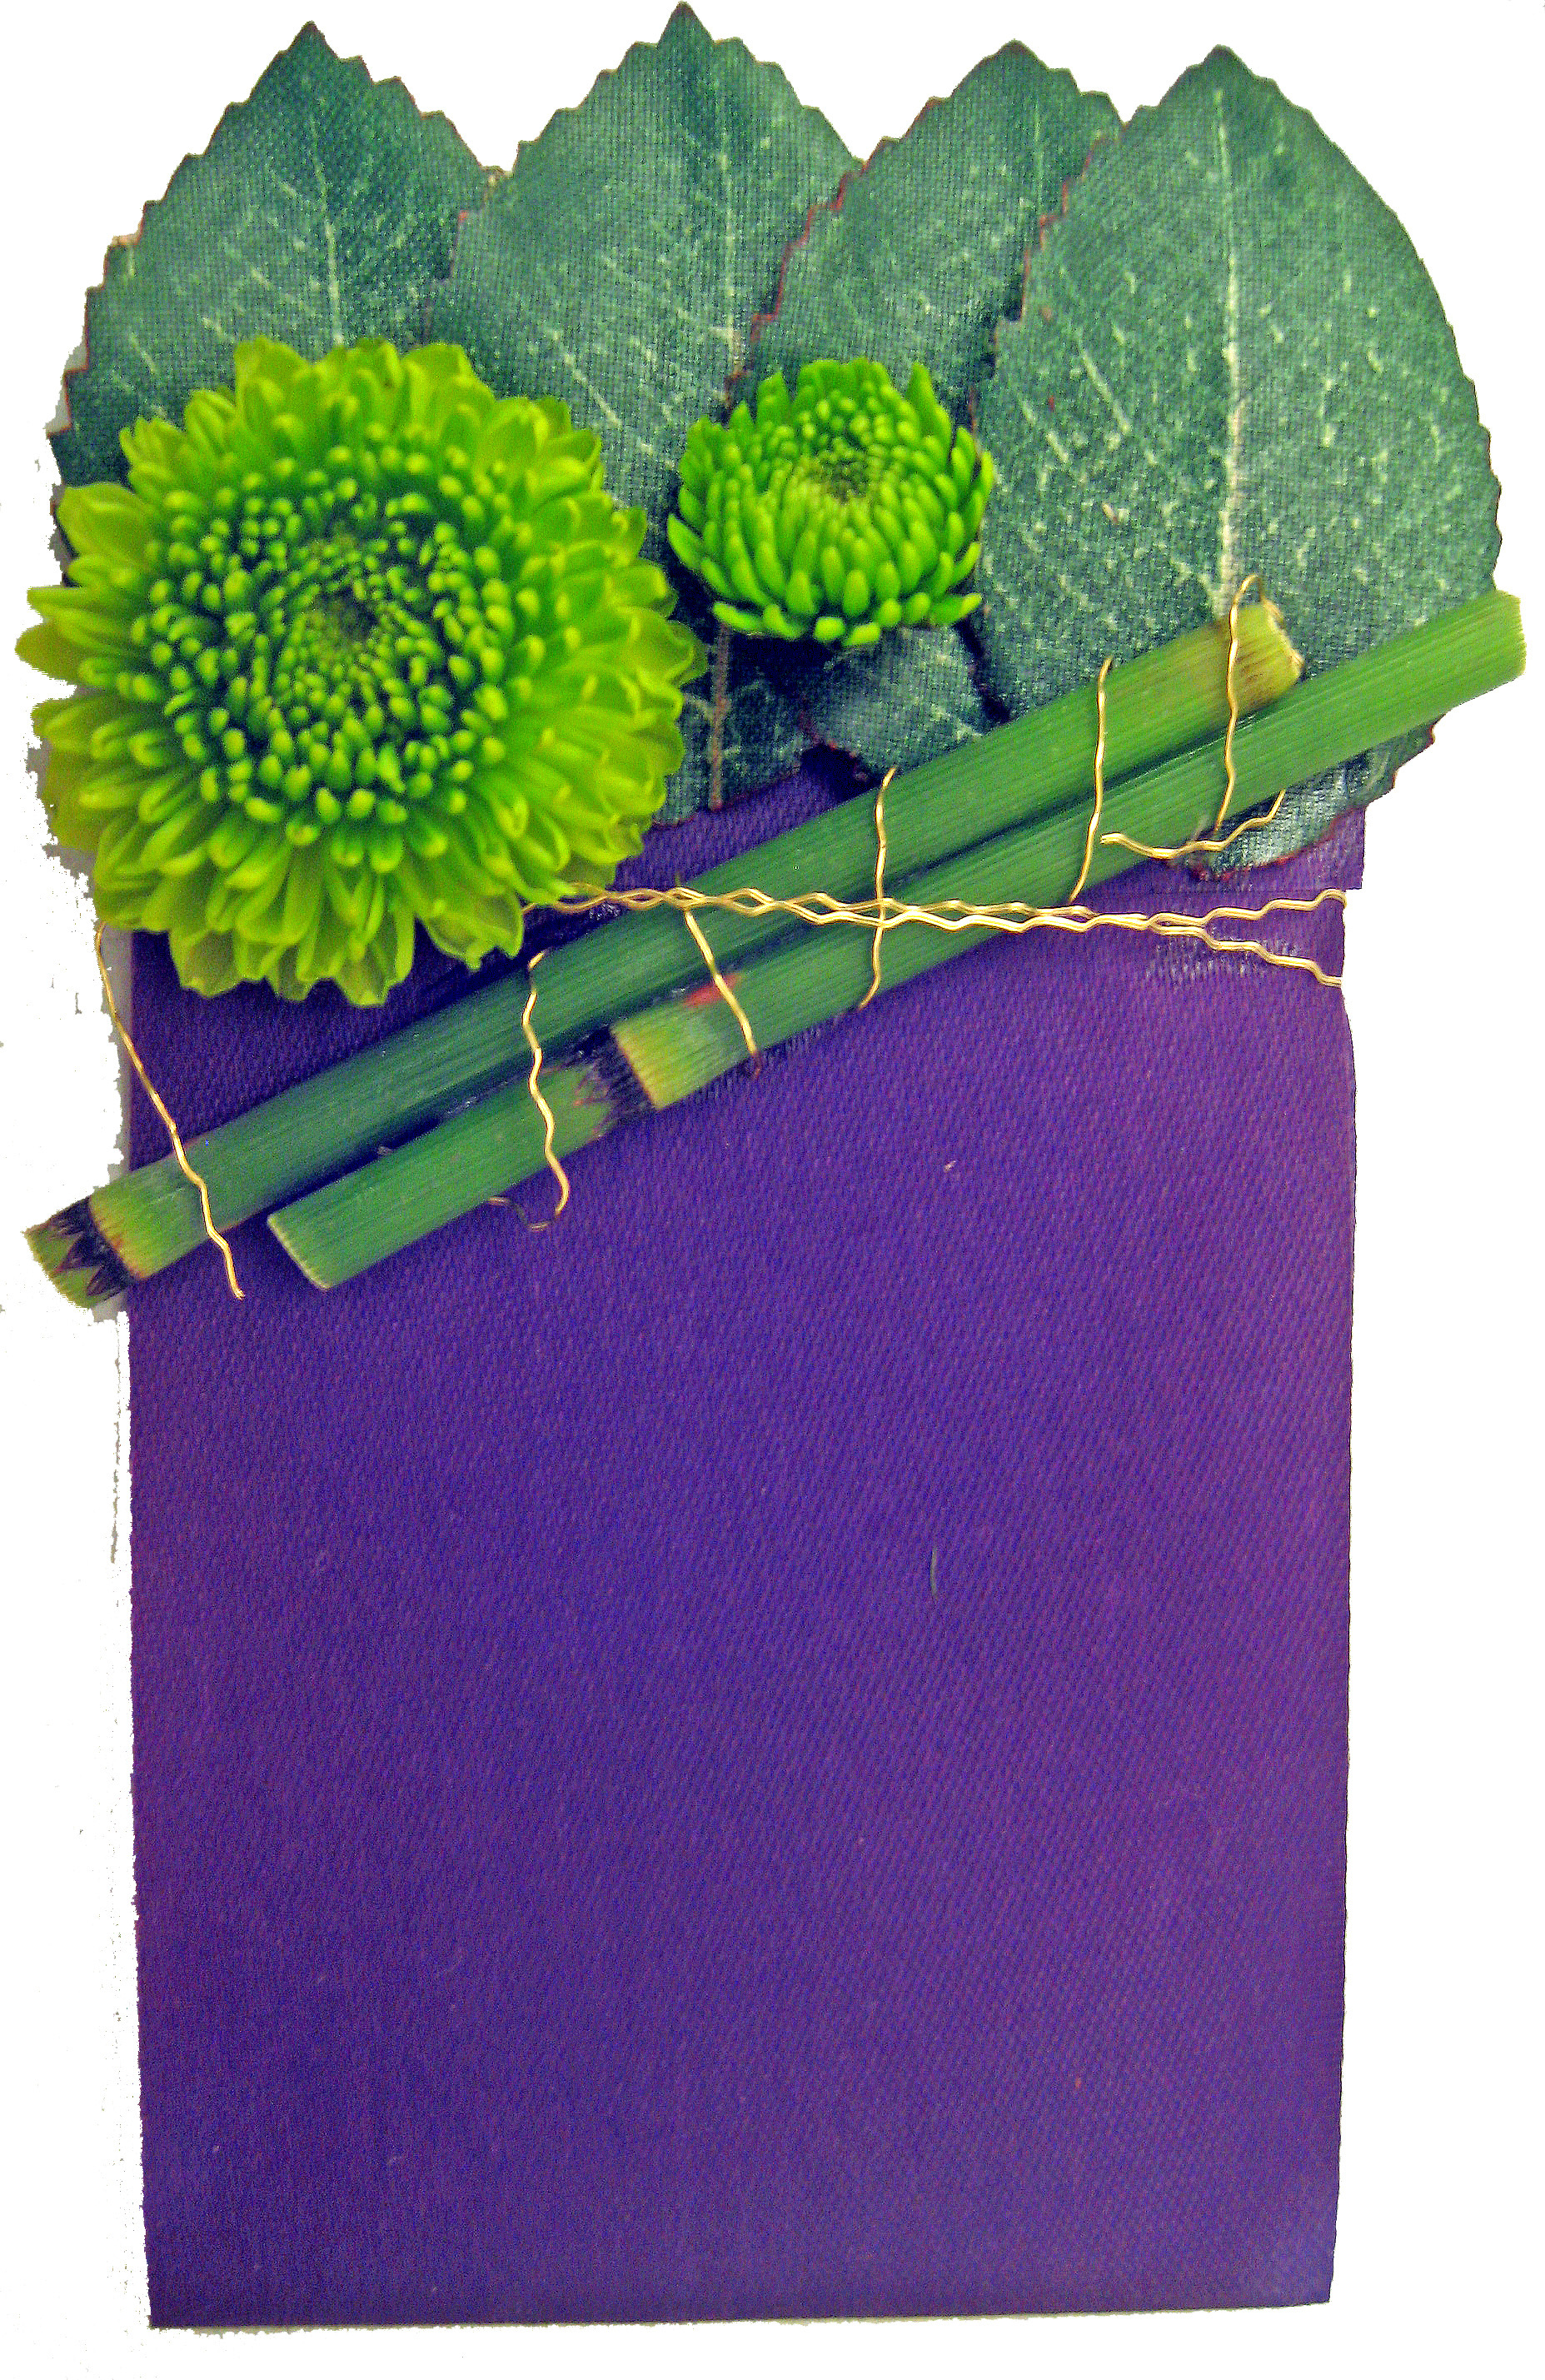 Flowers & Decor, purple, green, Boutonnieres, Flowers, Boutonniere, Sleeve, Pocket, Sea of blossoms